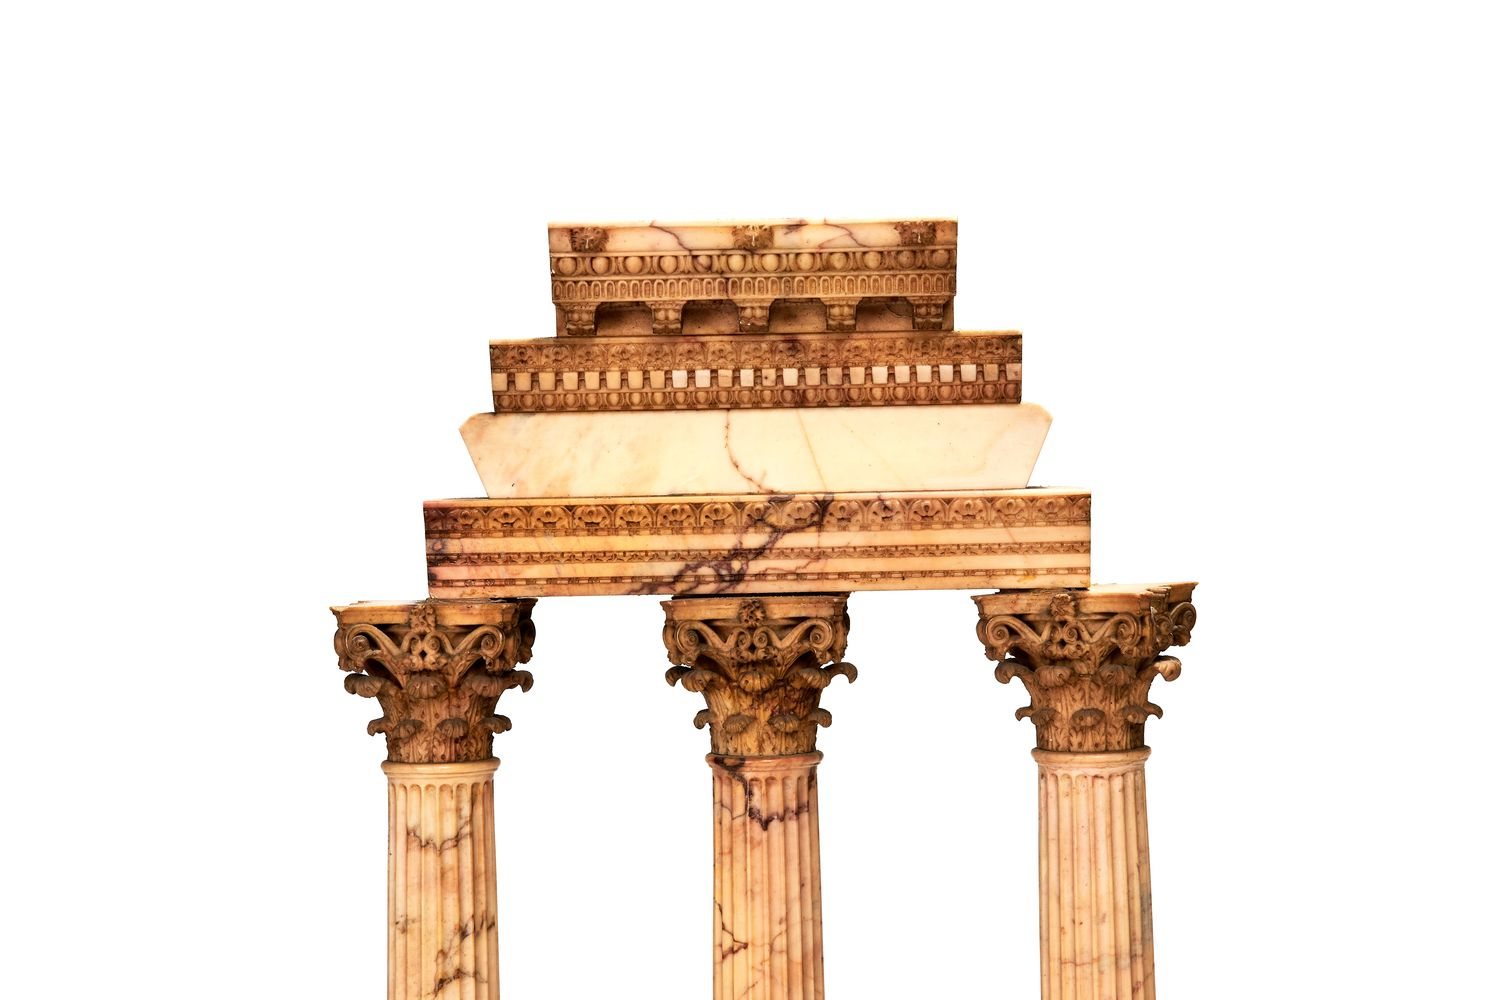 A pair of large Italian marmo giallo Grand Tour souvenir models of Temple of Castor and Pollux and t - Image 3 of 7